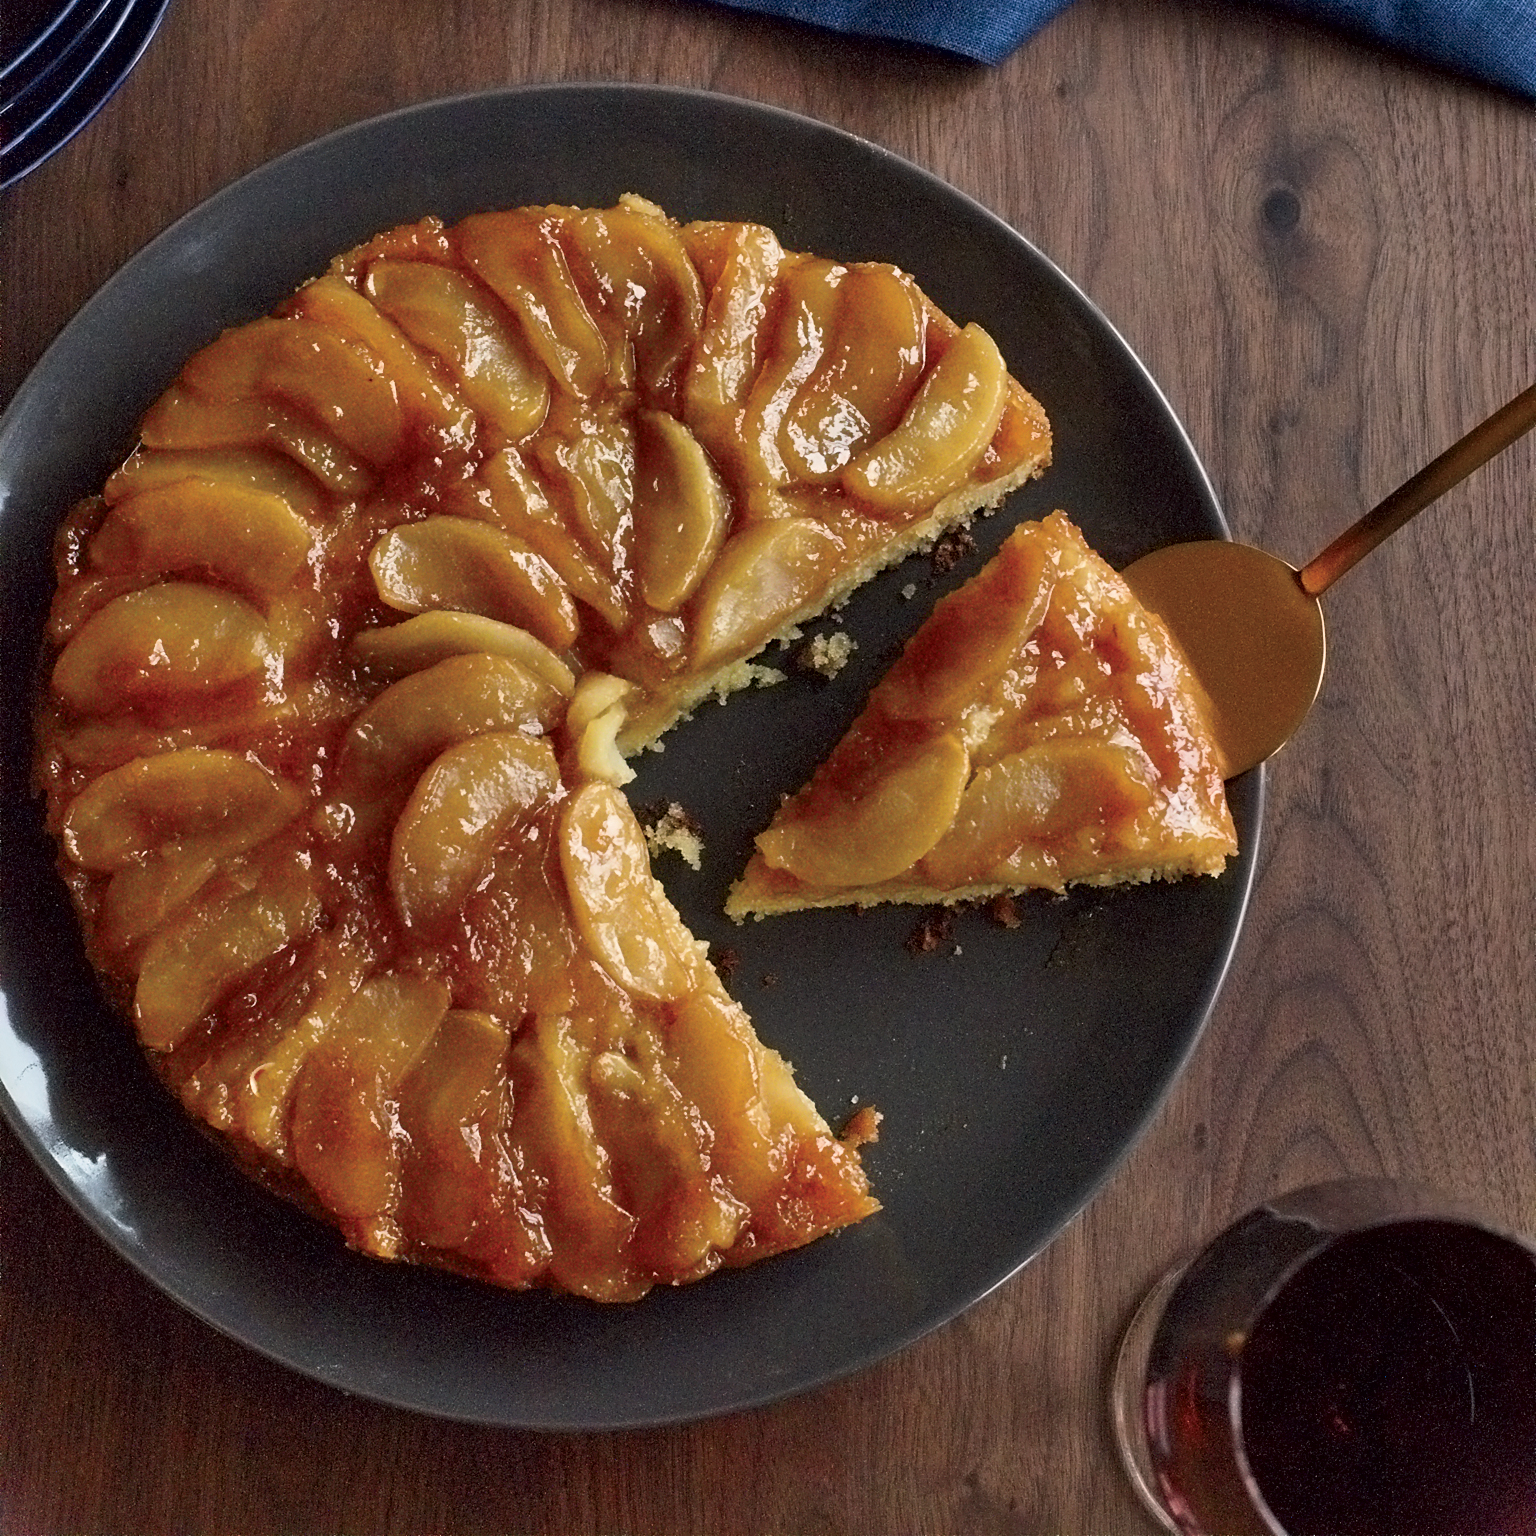 201011-r-apple-upside-down-cake.jpg